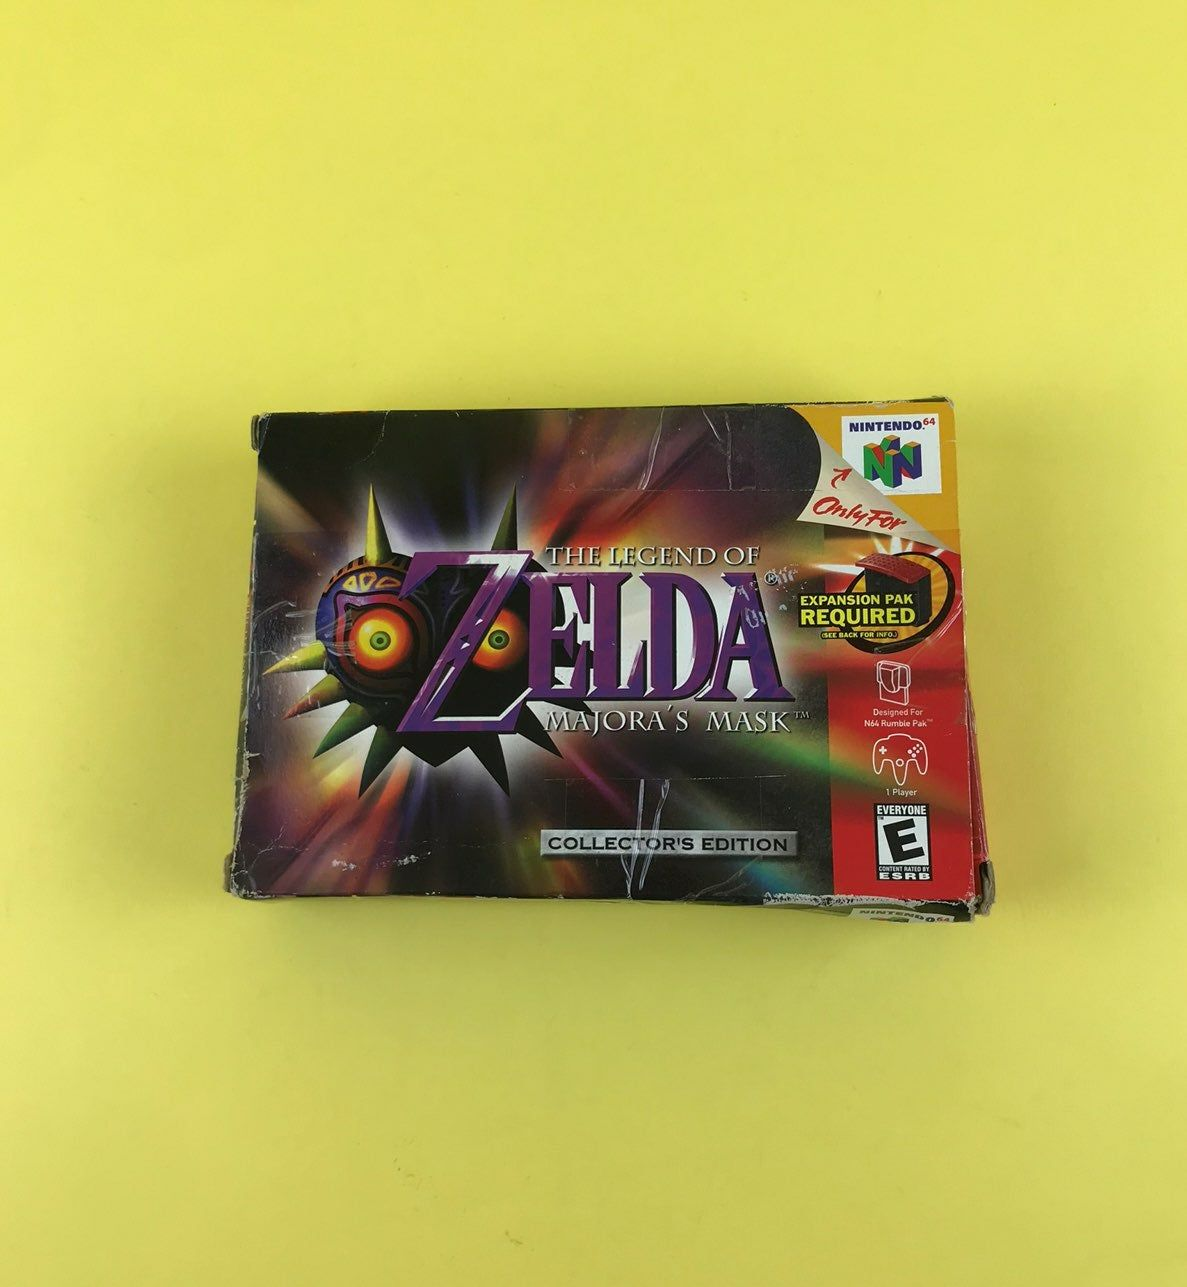 Zelda Majora S Mask Collector S Edition For The Nintendo 64 System N64 This Cart Is Cleaned Tested And Ready To Be The Game Is Over Retro Video Games N64